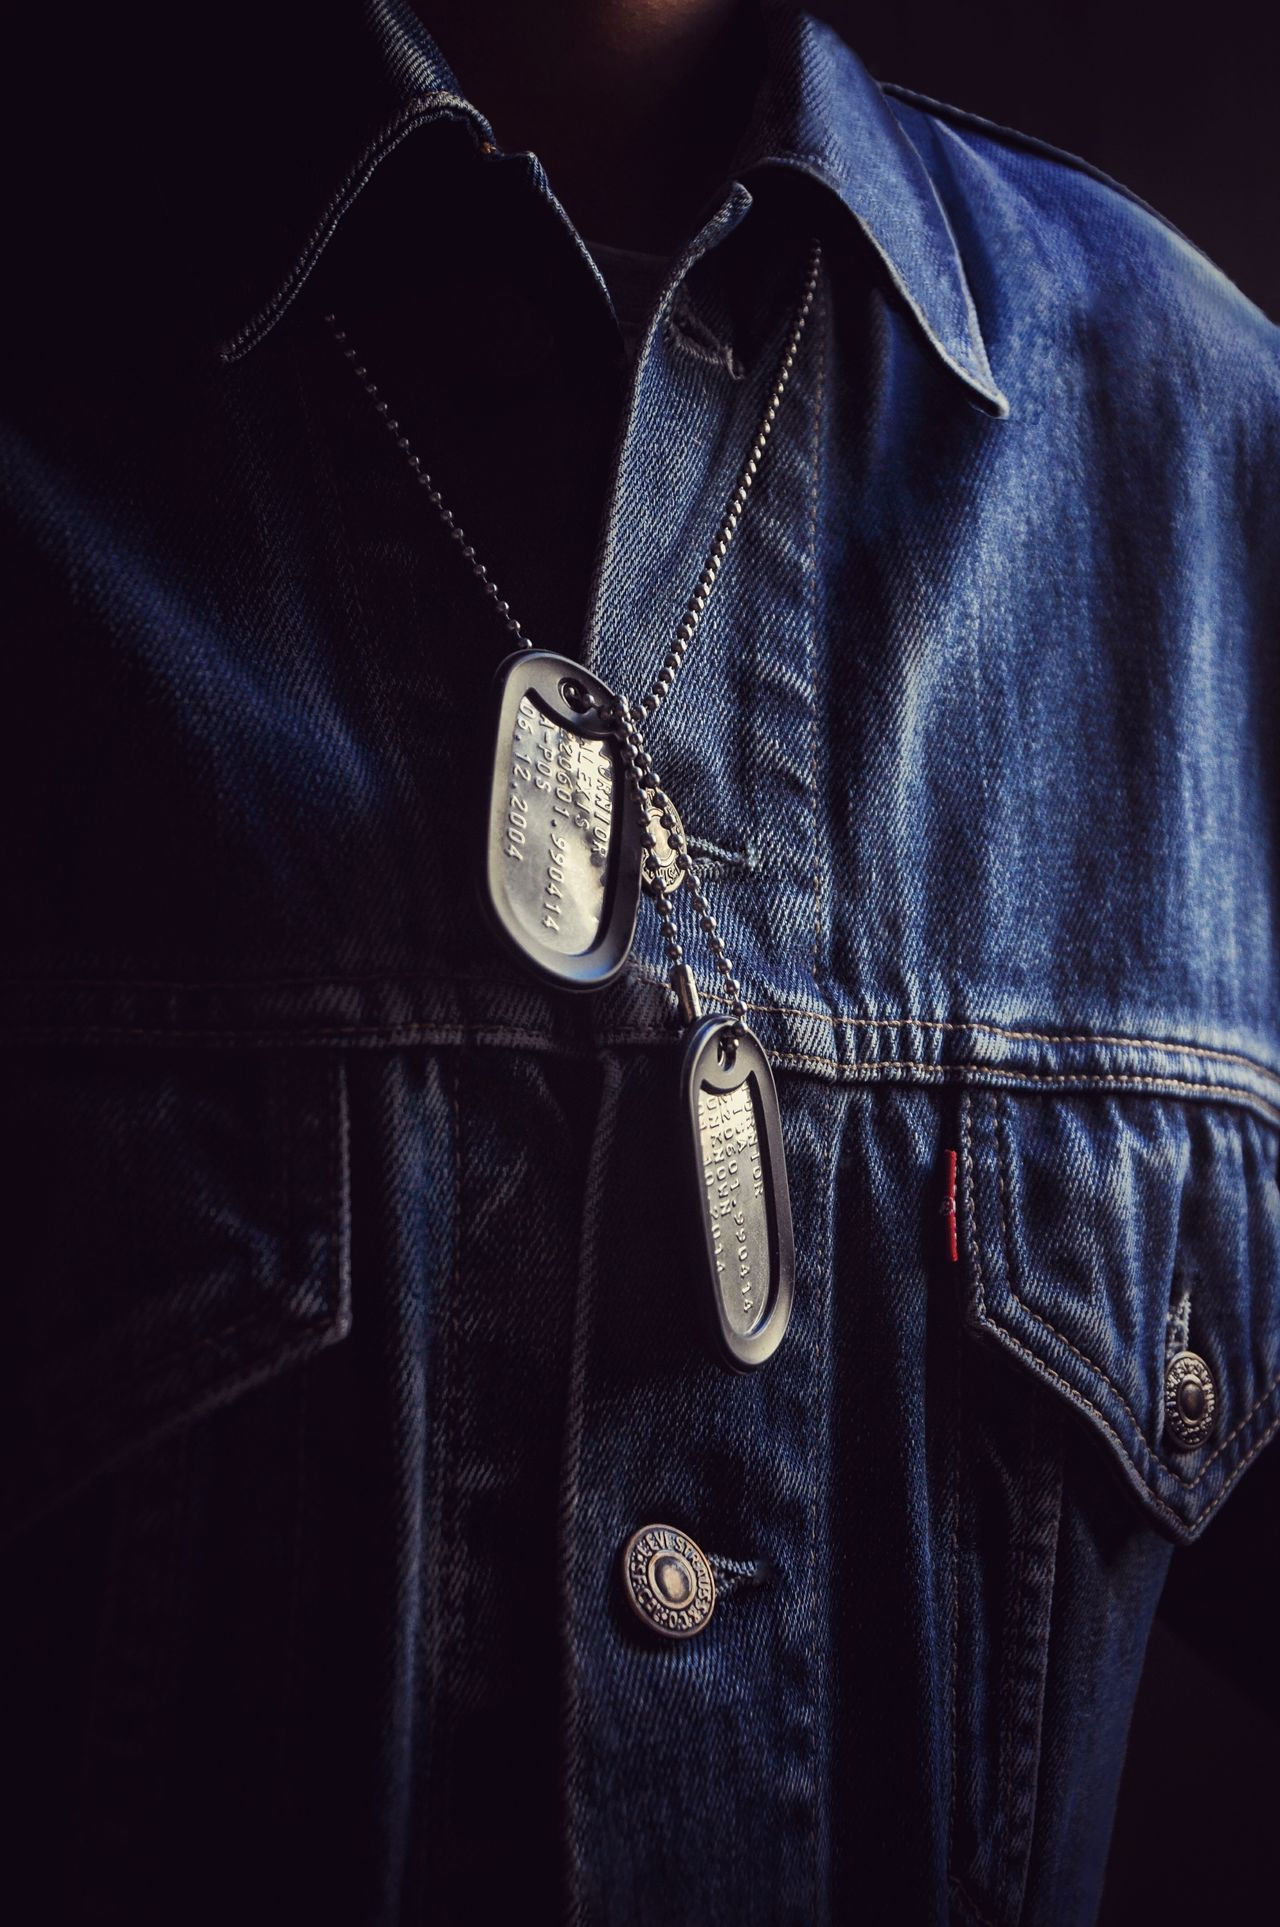 Fashion Clothing Close-up Pocket  Jeans Studio Shot Army Life Dog Tags Dog Tag Only Men Adults Only People Jeans Jacket Jean Jacket Levi's Levi's® Levi's Strauss From My Point Of View My Unique Style Window Light And Shadow Motion Capture Army Style